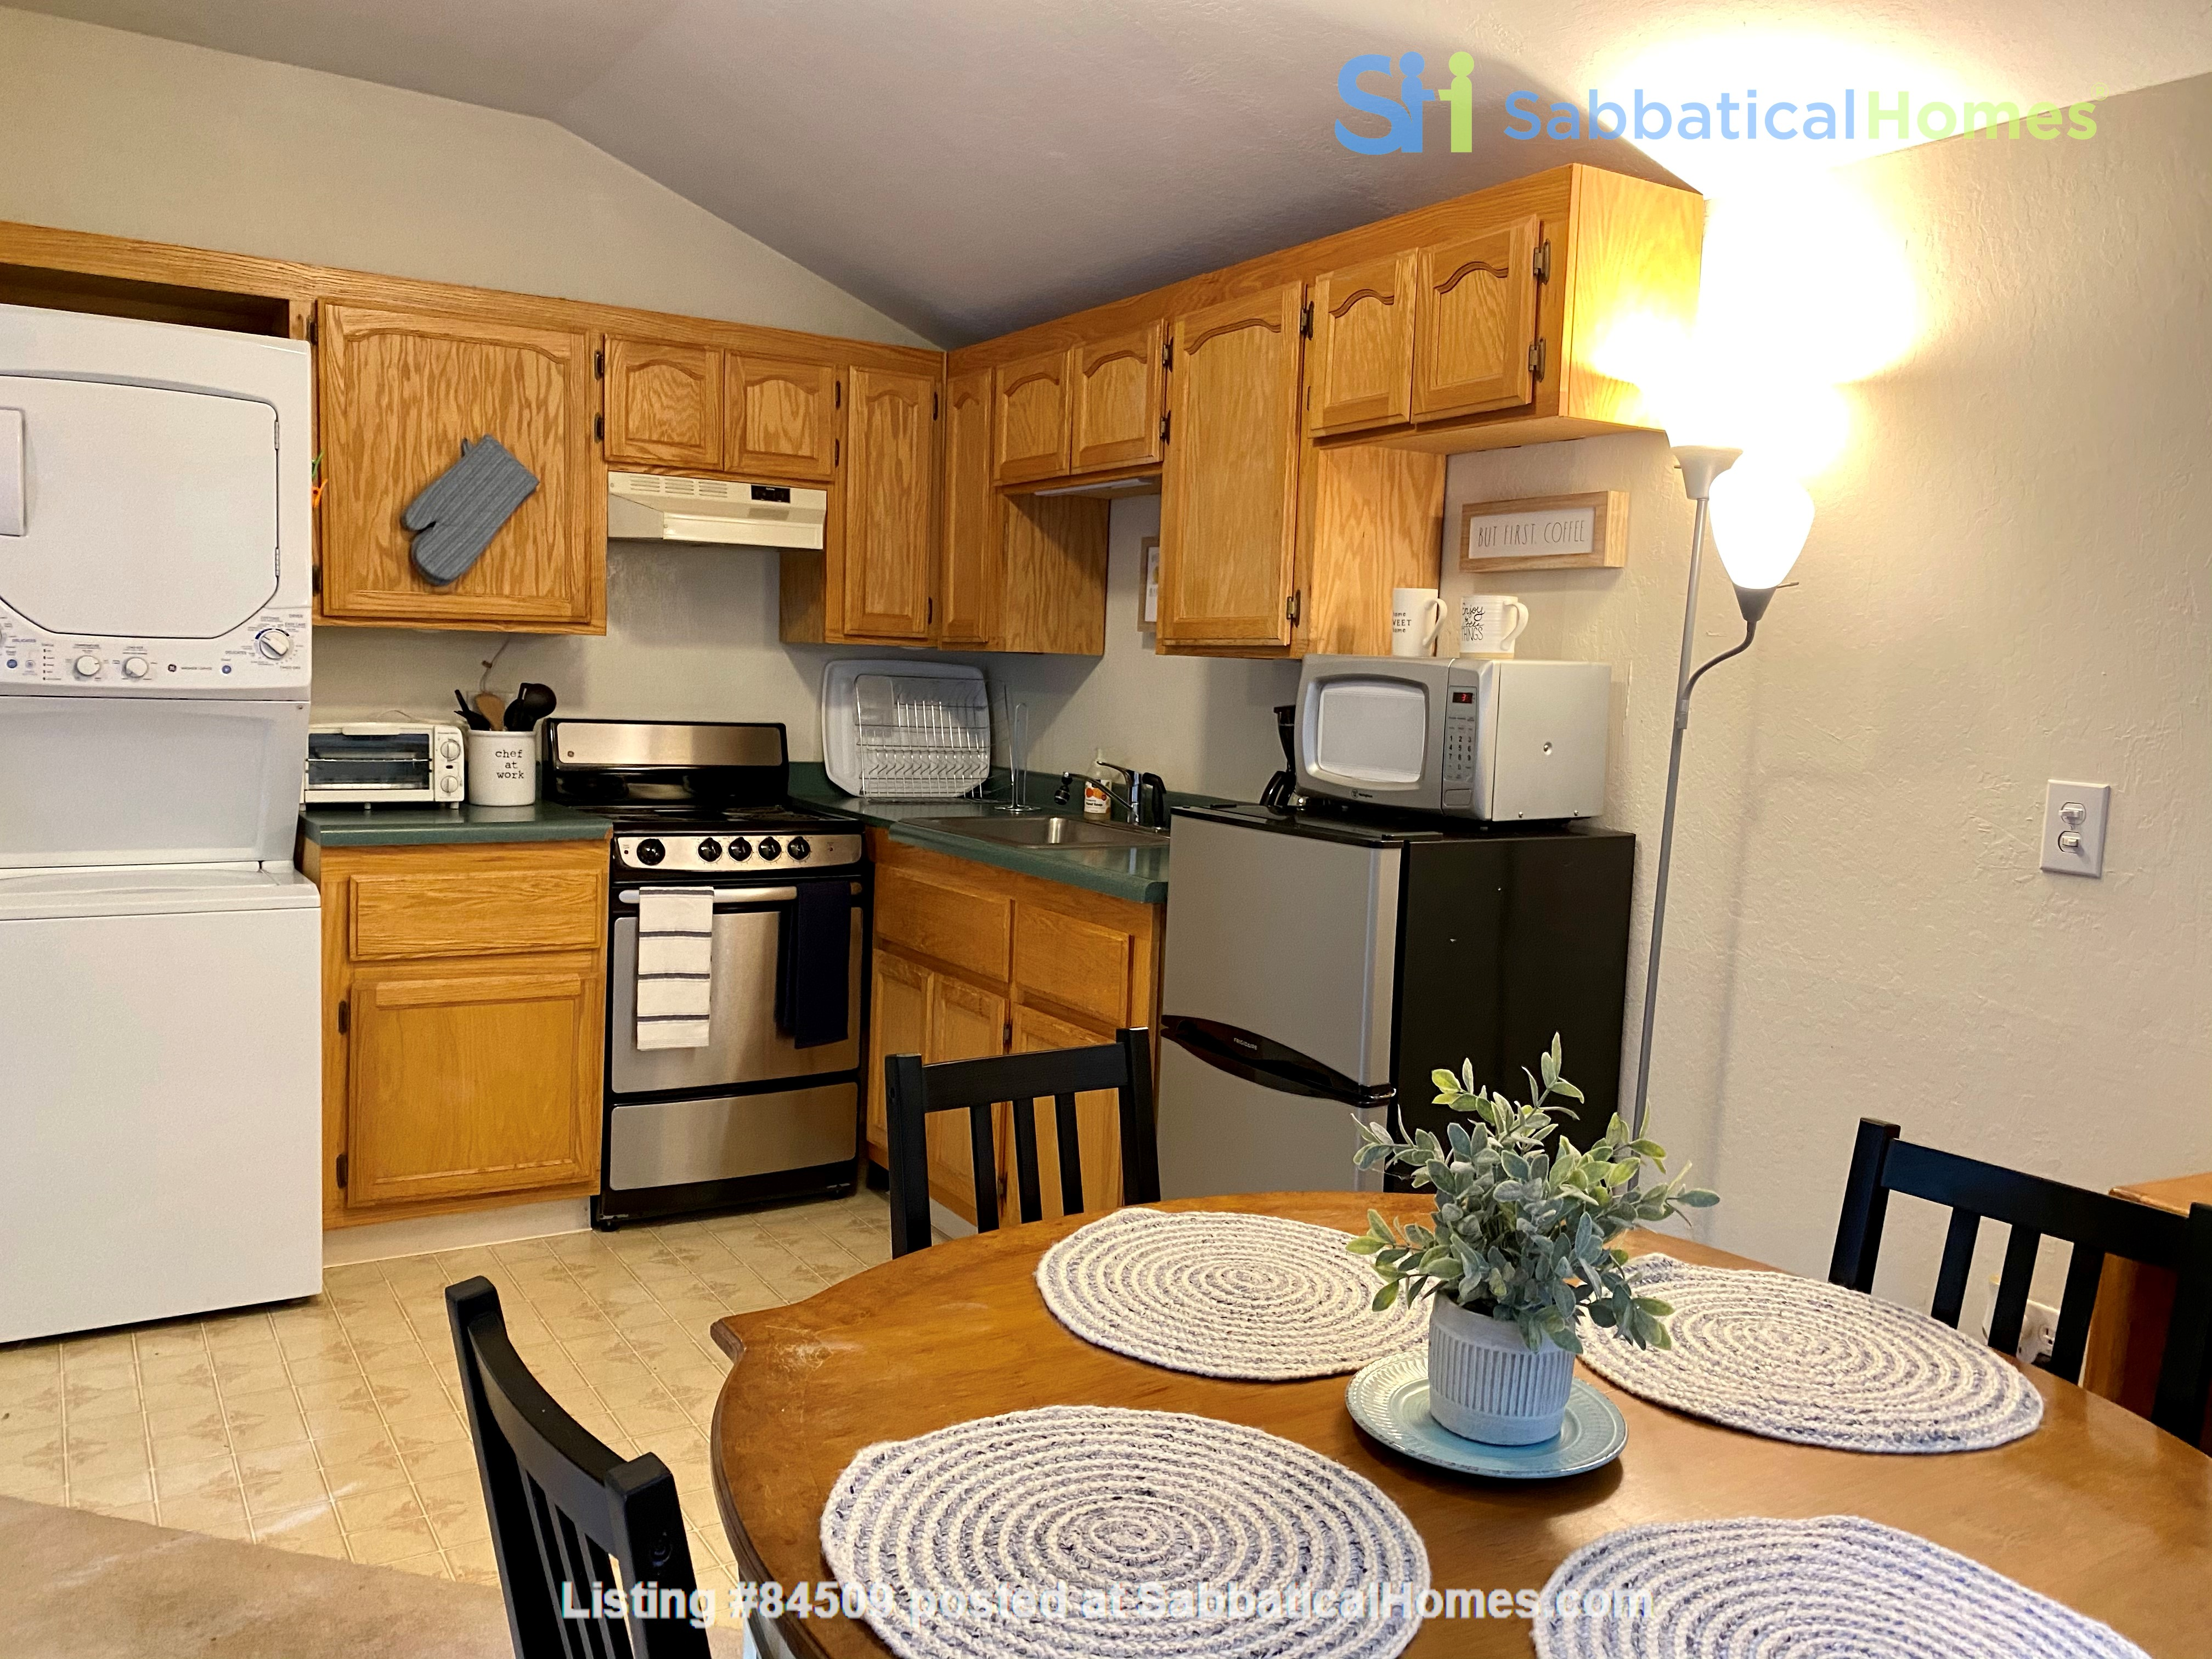 Charming, fully furnished 1BR apartment in Orinda Home Rental in Orinda, California, United States 3